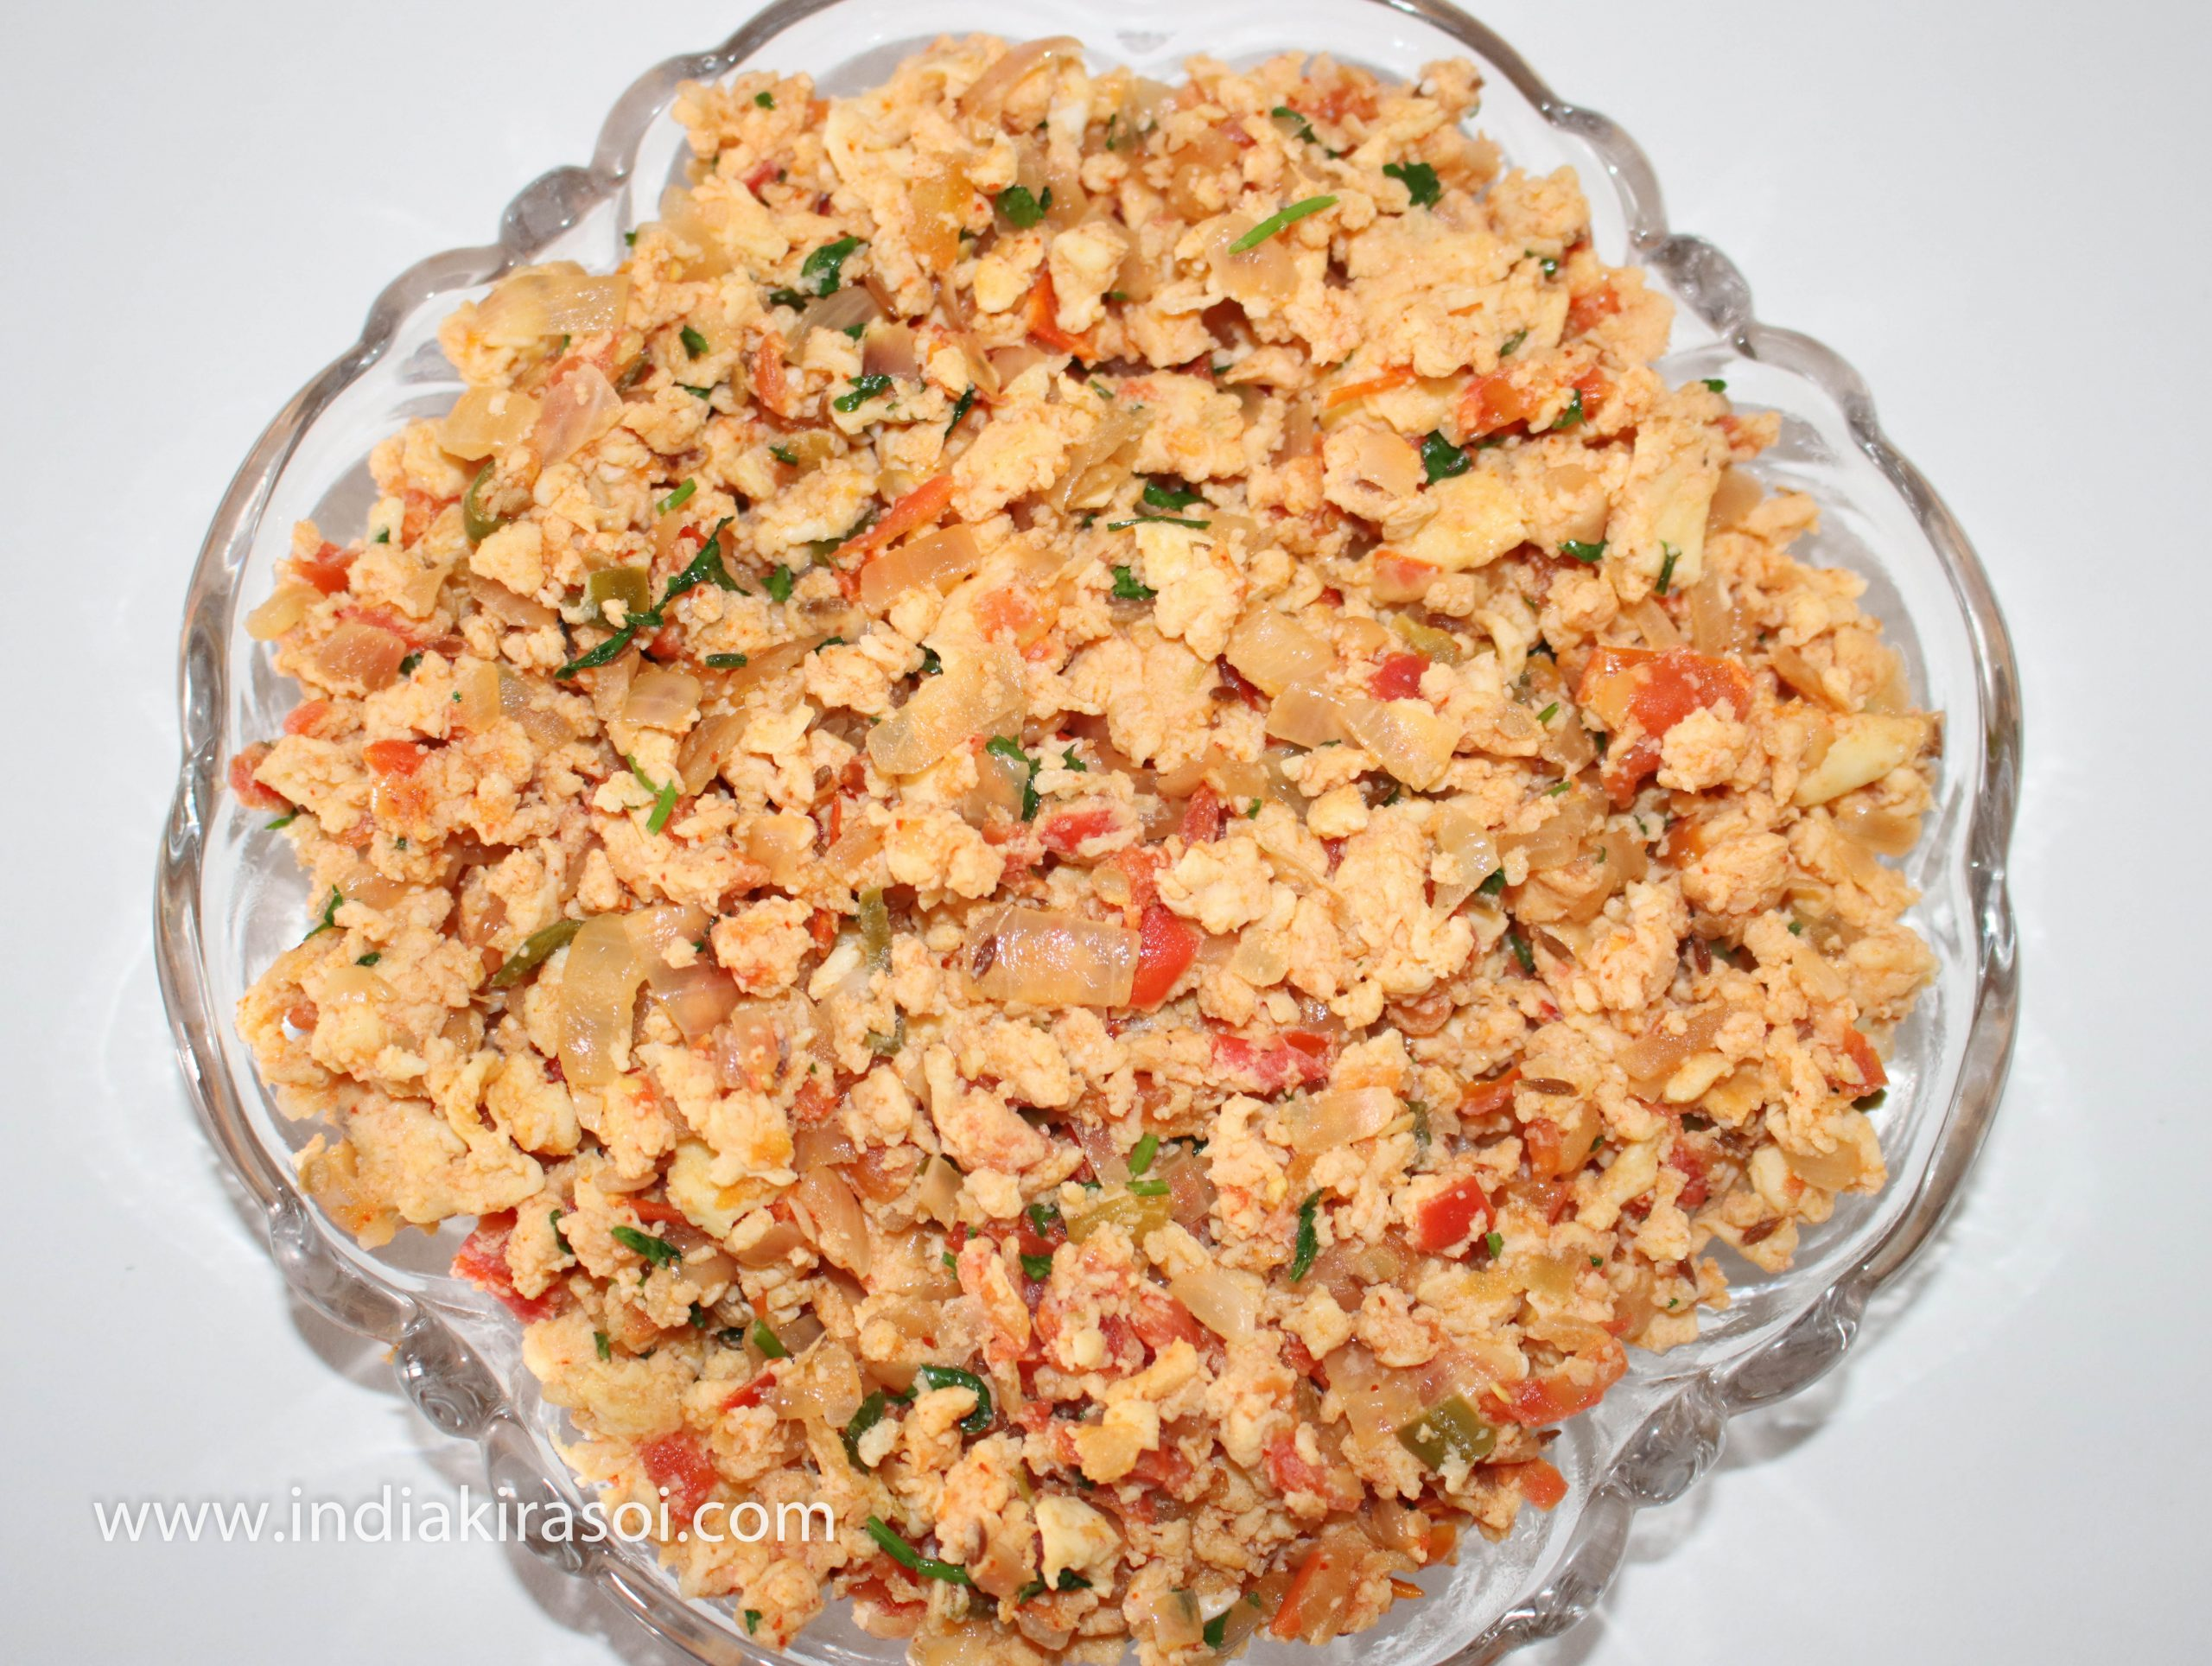 Take out the anda bhurji/ mashed egg in a separate bowl.